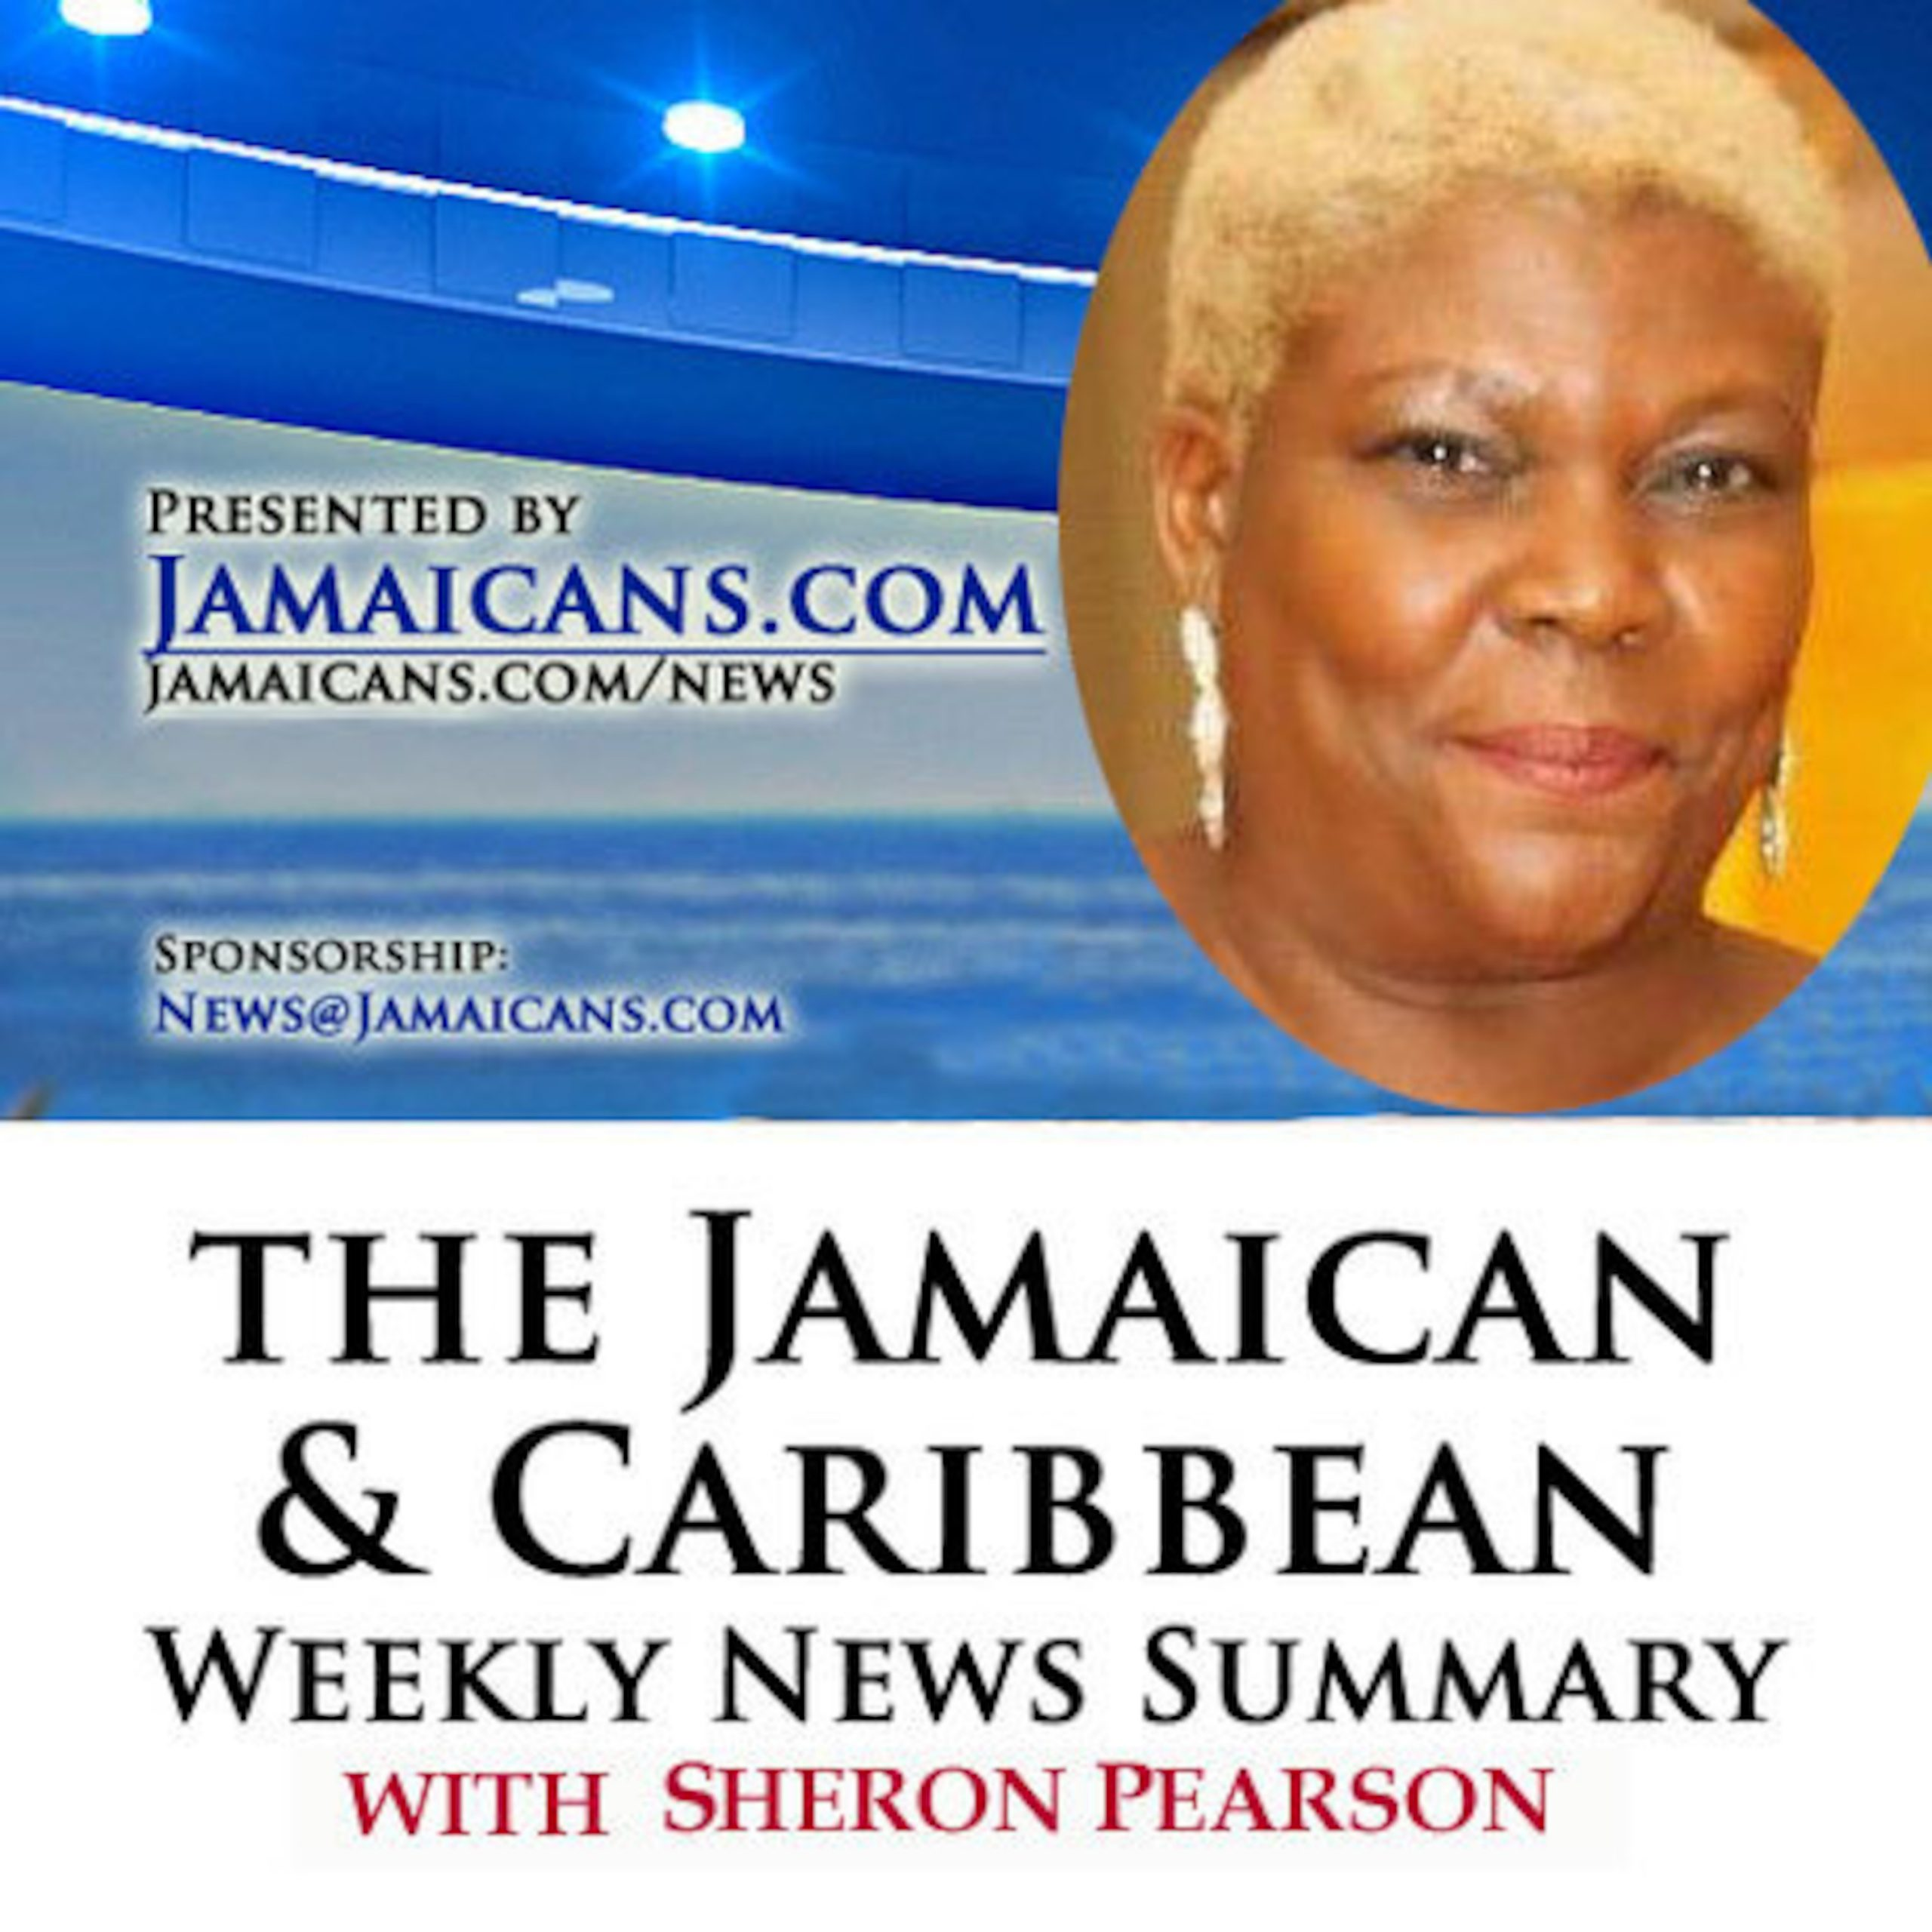 Listen to the Podcast of The Jamaica & Caribbean Weekly News Summary for the week ending May 1, 2020